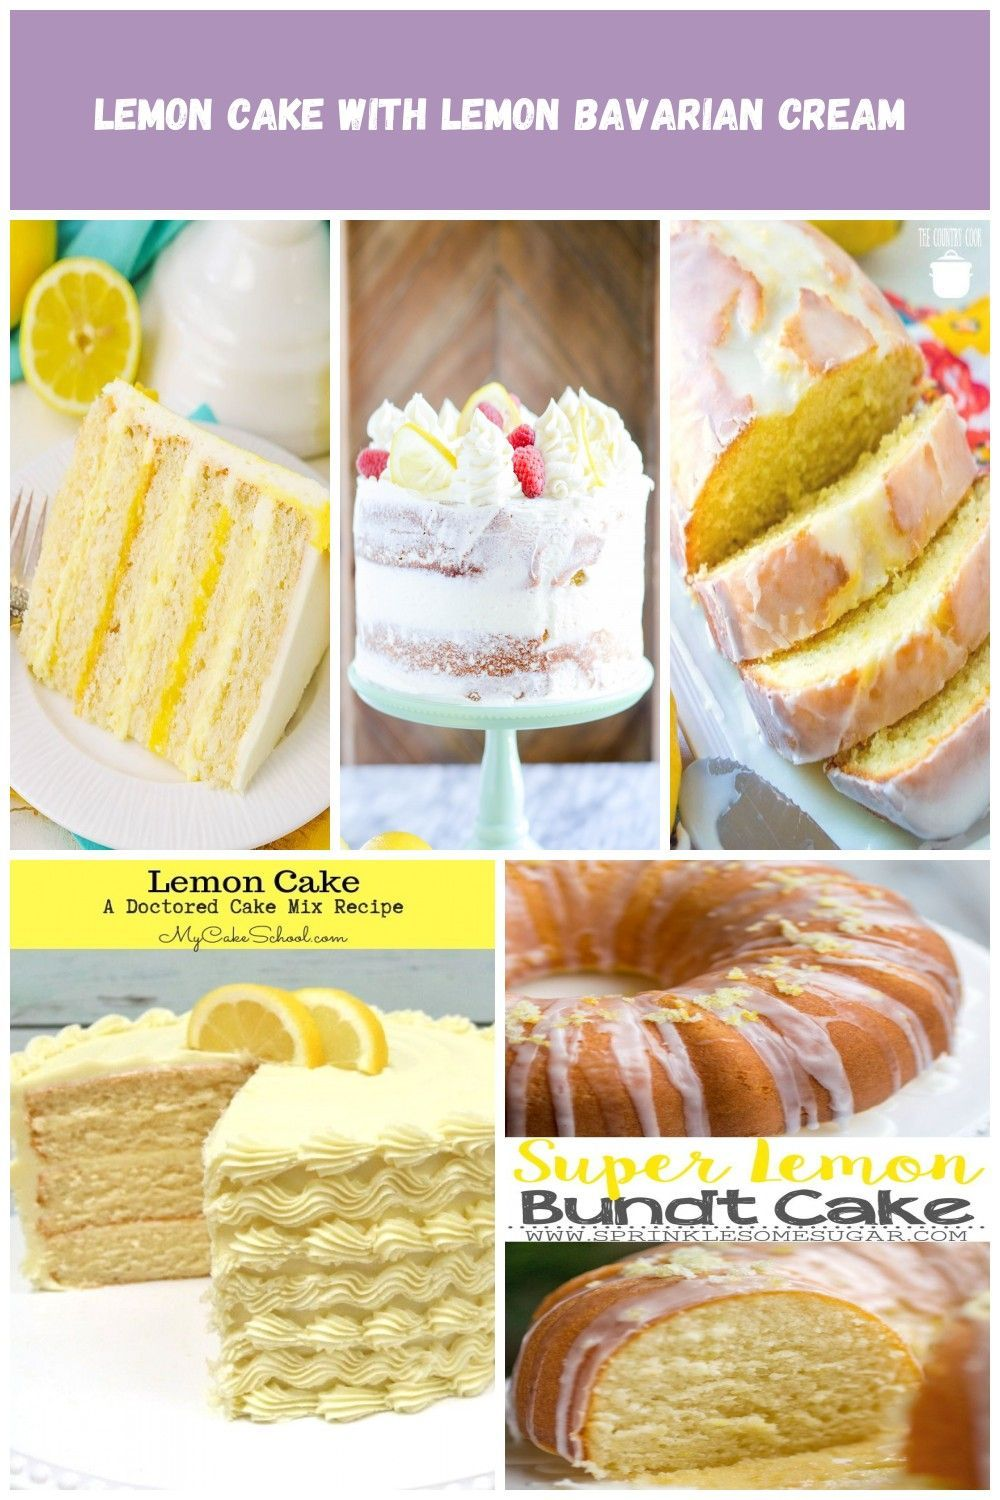 This easy lemon cake recipe makes a moist cake with alternating layers of lemon bavarian cream, and lemon curd filling with lemon buttercream! Yum! lemon cake Lemon Cake with Lemon Bavarian Cream #lemonbuttercream This easy lemon cake recipe makes a moist cake with alternating layers of lemon bavarian cream, and lemon curd filling with lemon buttercream! Yum! lemon cake Lemon Cake with Lemon Bavarian Cream #lemonbuttercream